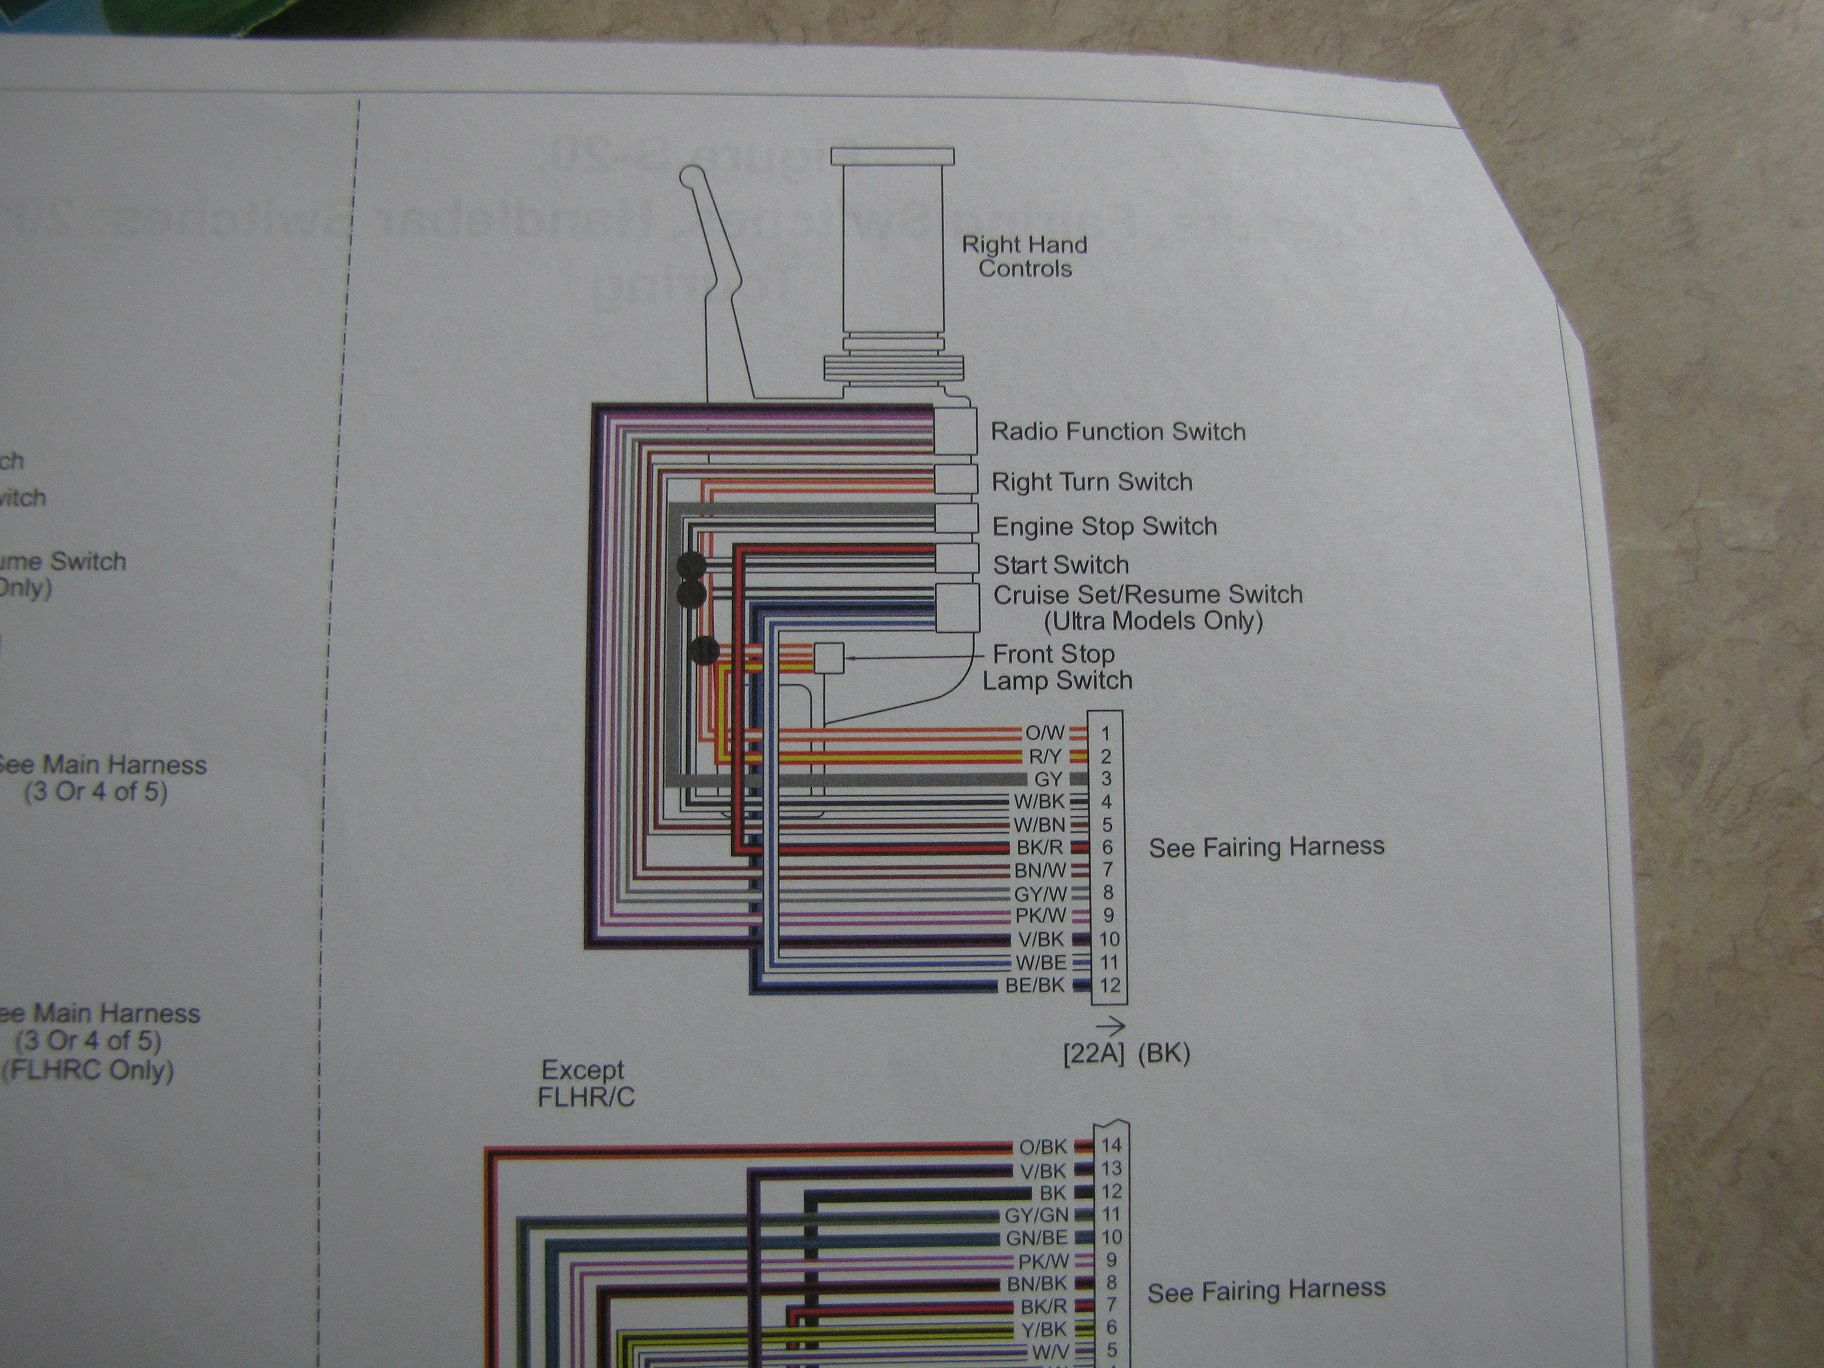 hight resolution of flhx wire diagram wiring library2012 street glide wiring diagram opinions about wiring diagram u2022 rh voterid